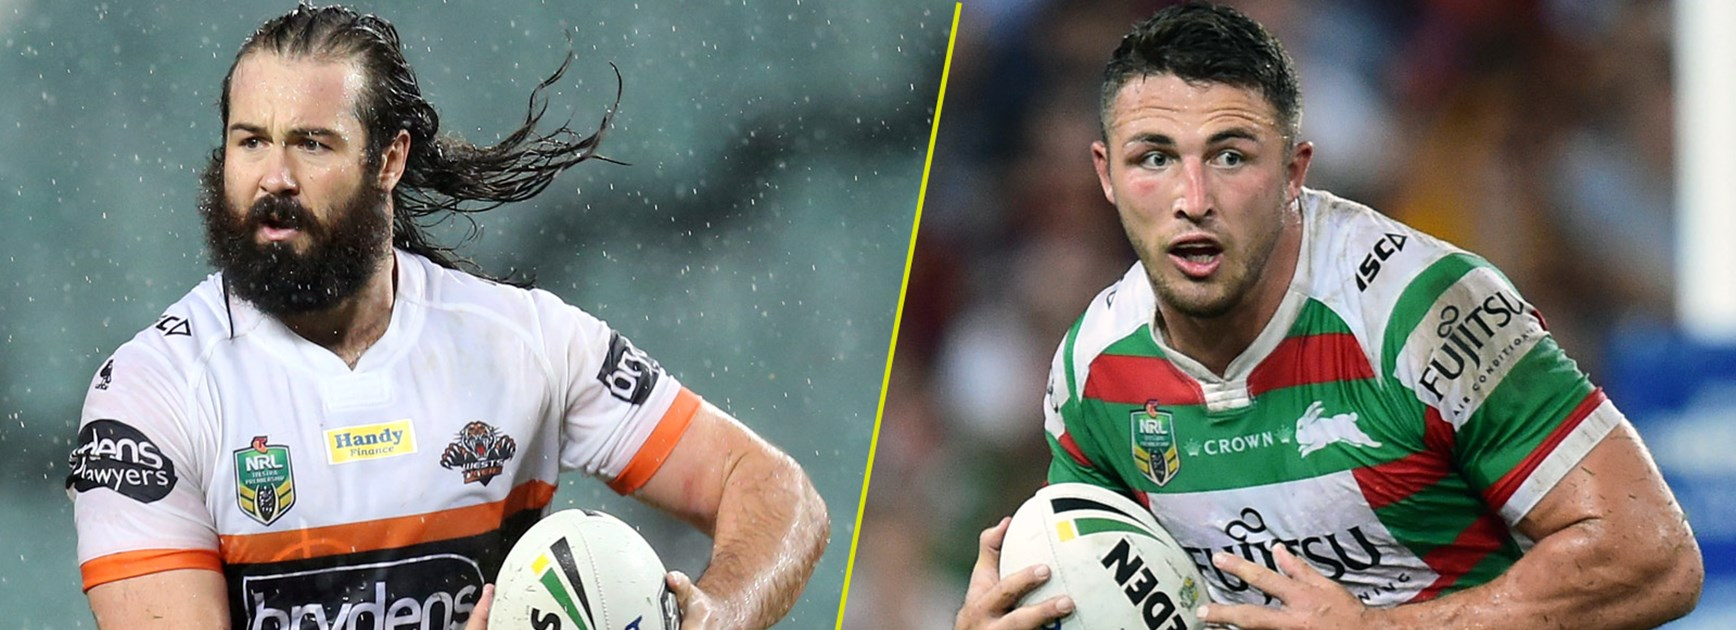 Aaron Woods and Sam Burgess.